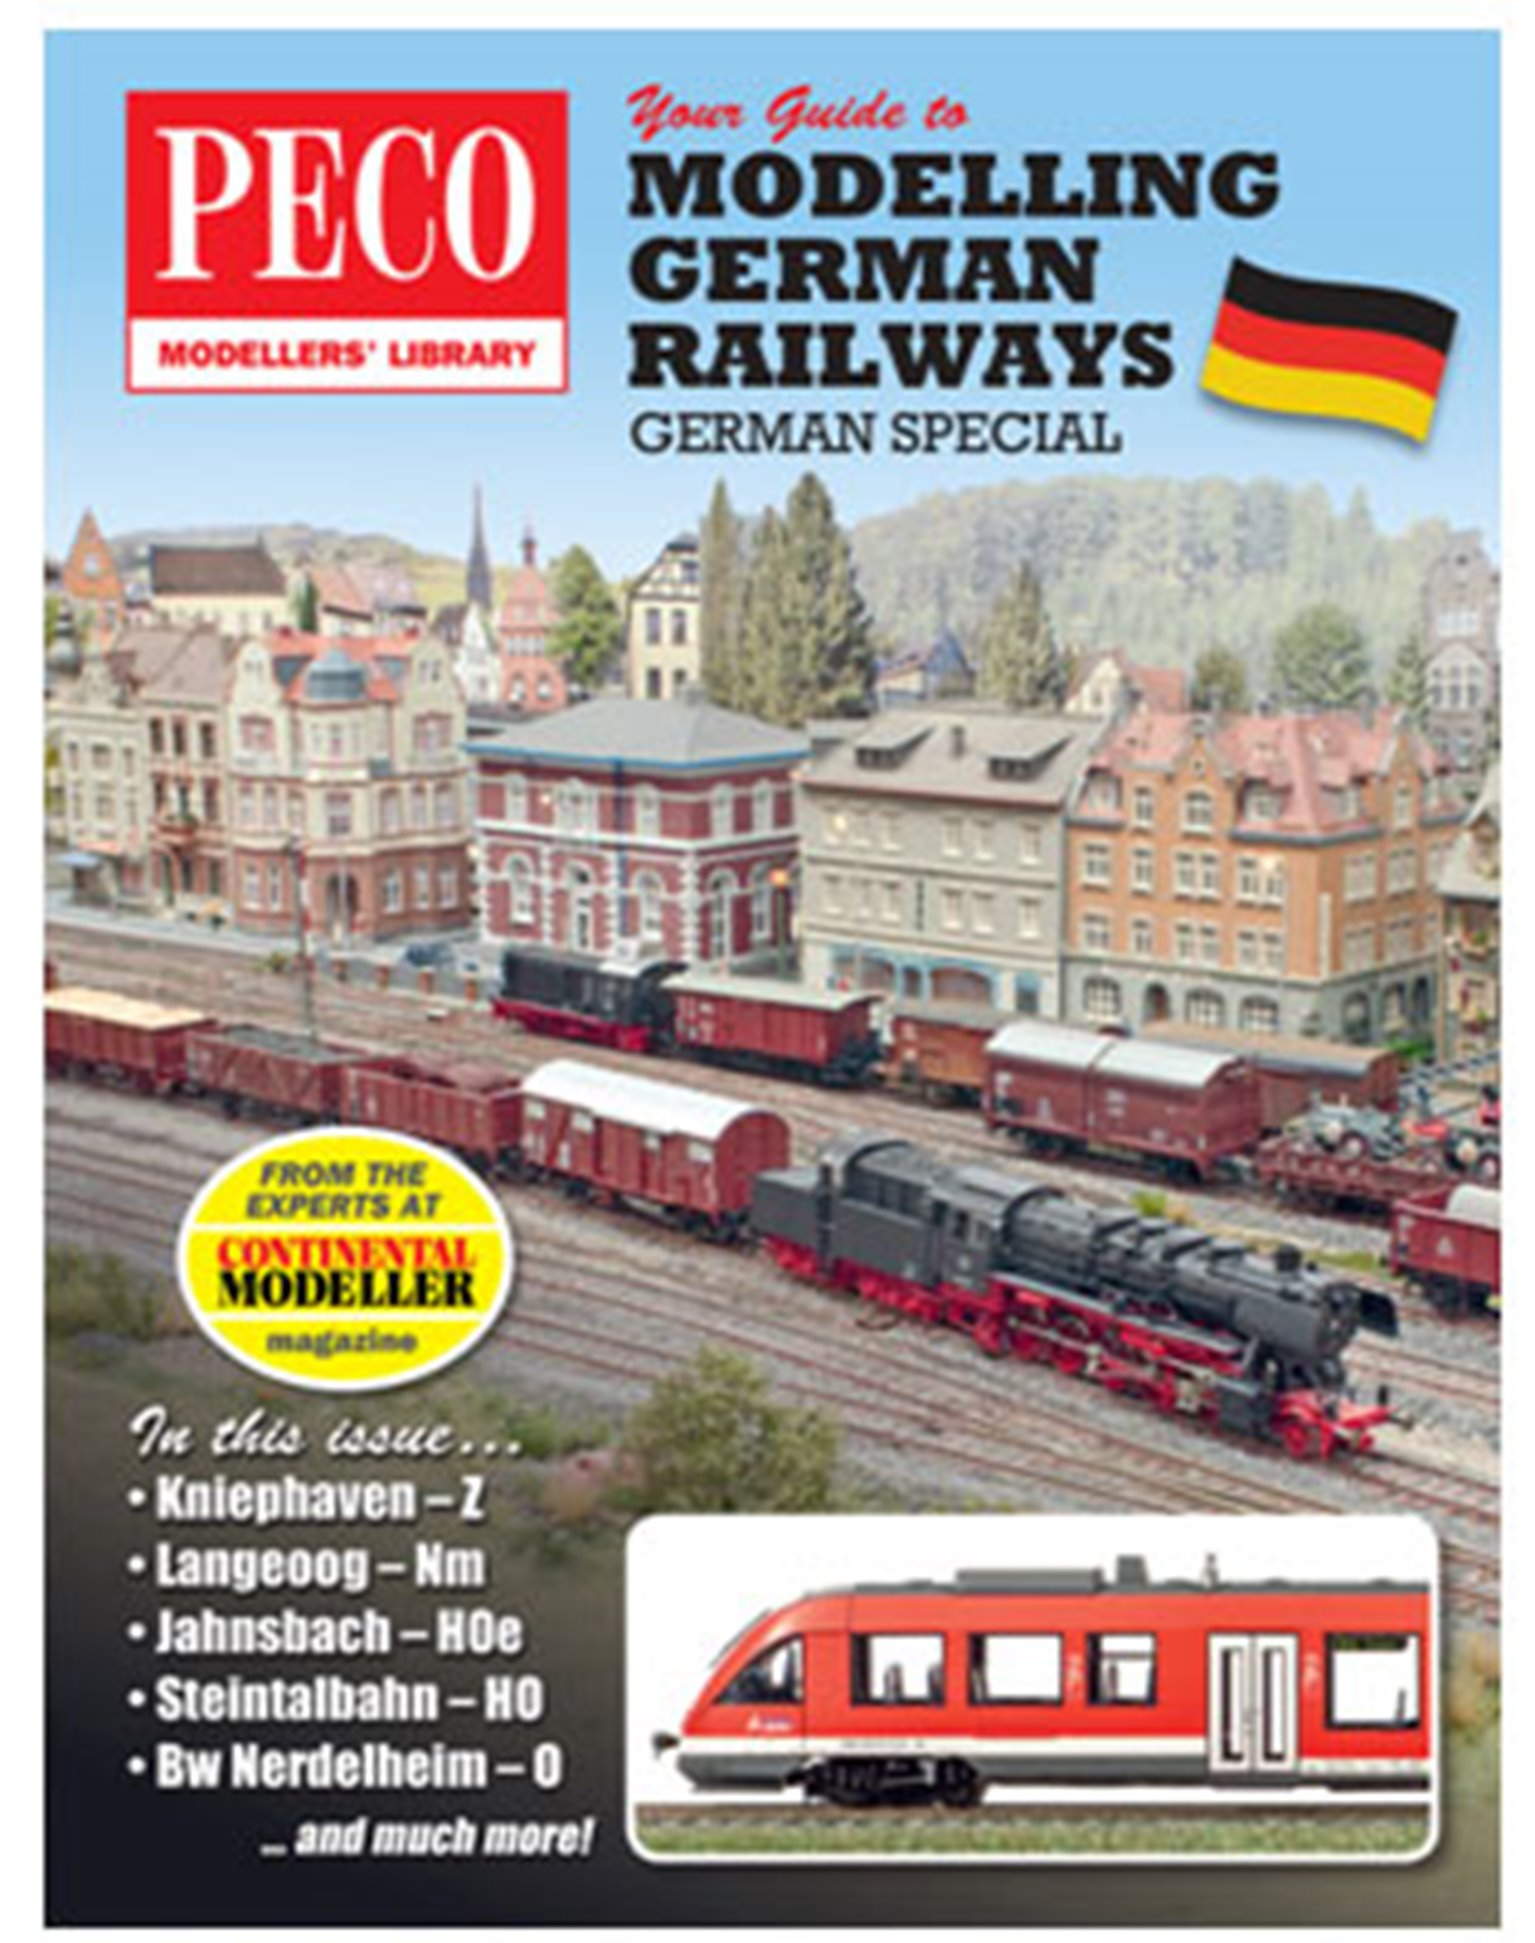 Your Guide to Modelling German Railways